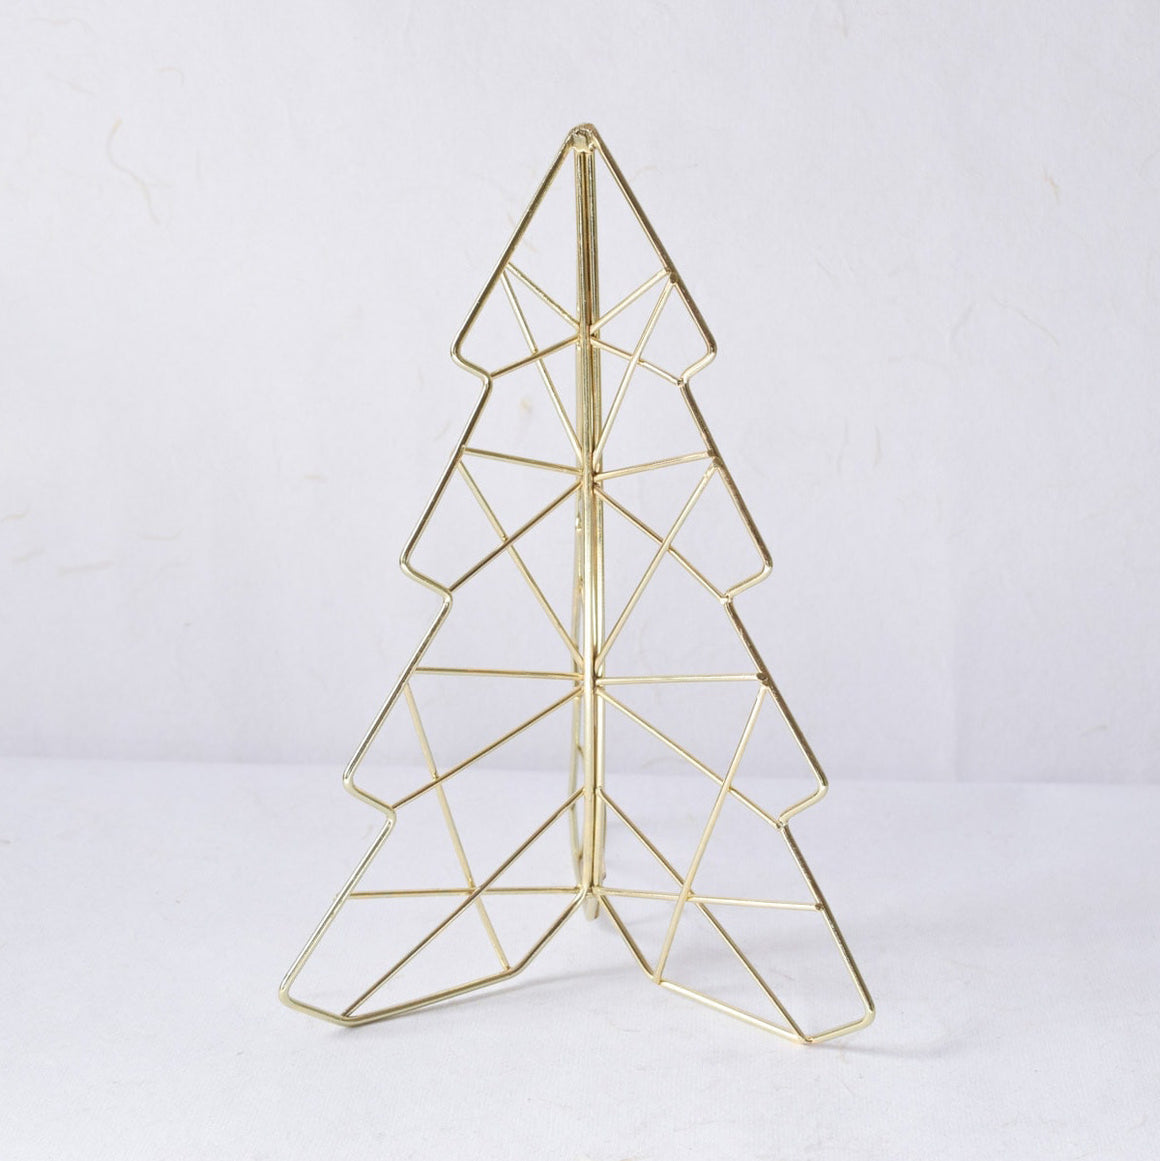 Decorative Golden Christmas Tree (Small)